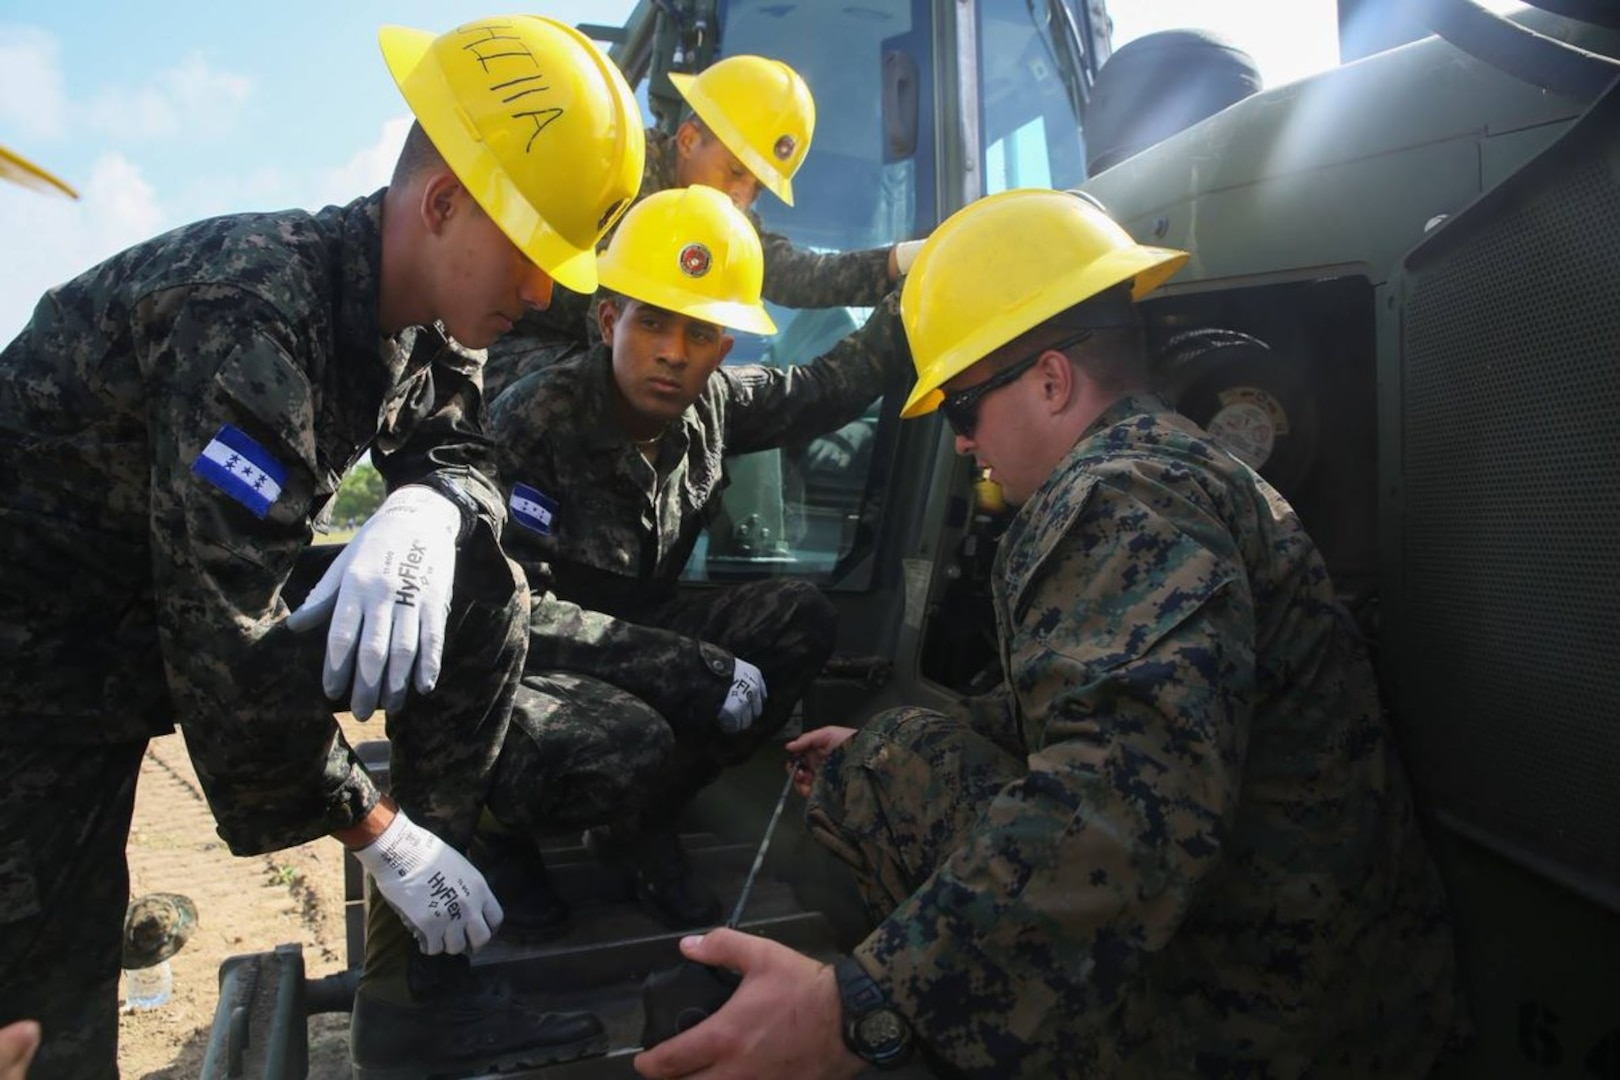 Marine Corps Cpl. Kaleb R. Hougland, senior heavy equipment mechanic with Special Purpose Marine Air-Ground Task Force-Southern Command, inspects a bulldozer during a construction project with Honduran service members and U.S. Marines at Puerto Castilla, Honduras, June 24, 2016. The Marines worked with Honduran engineers on construction and restoration projects and shared knowledge and experience. Marine Corps photo by Cpl. Ian Ferro